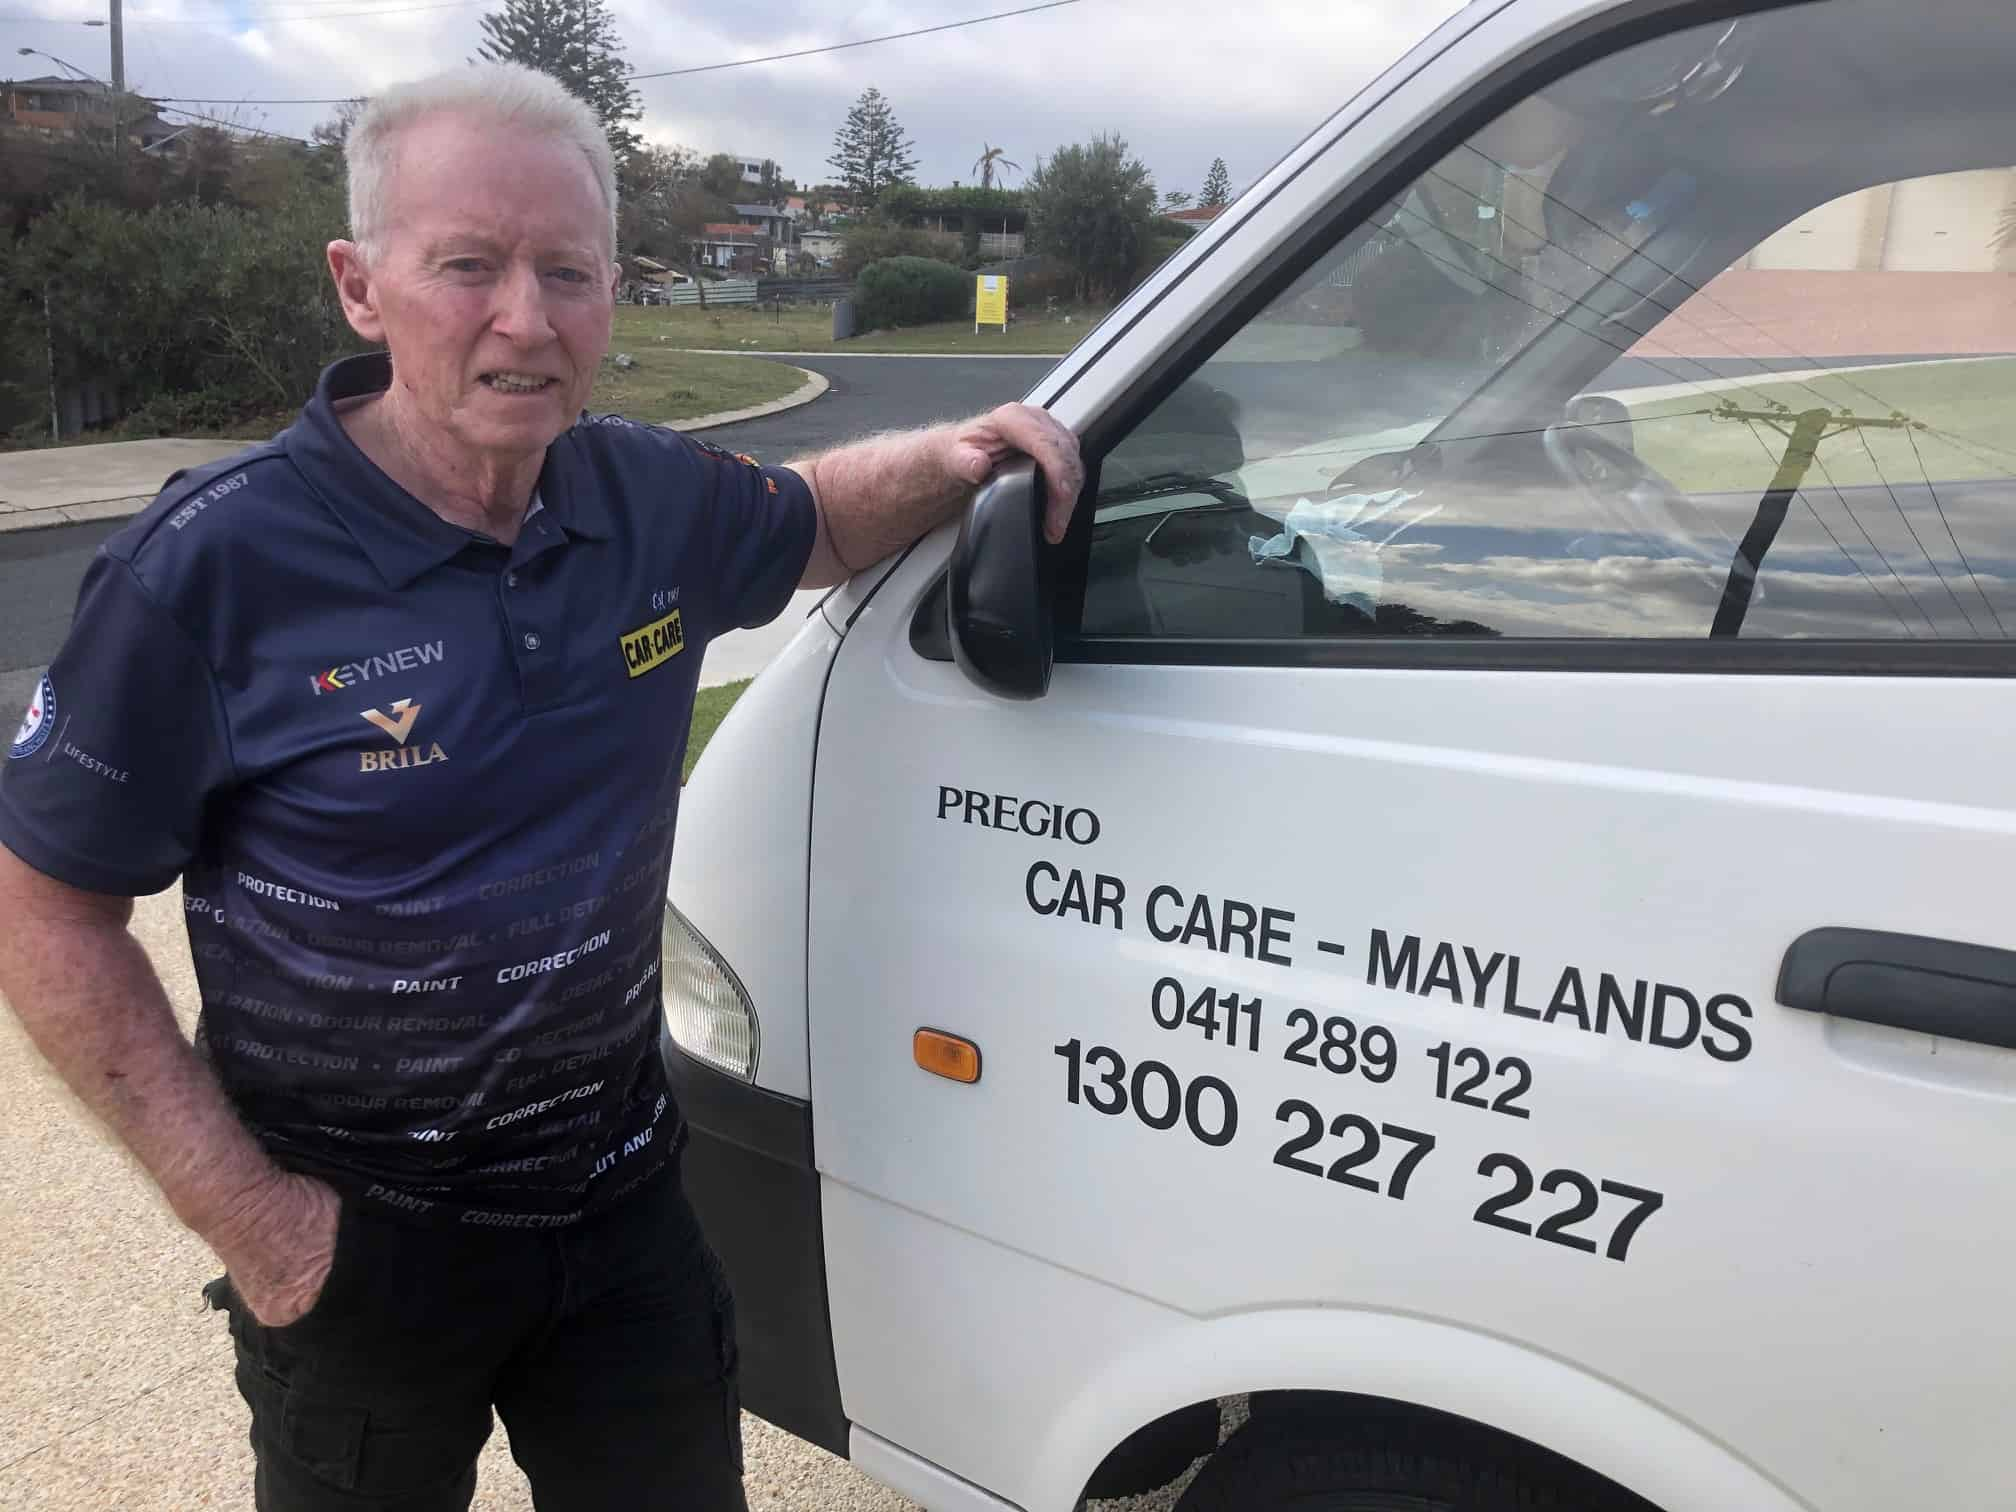 Jim Car Care Maylands leaning on white van